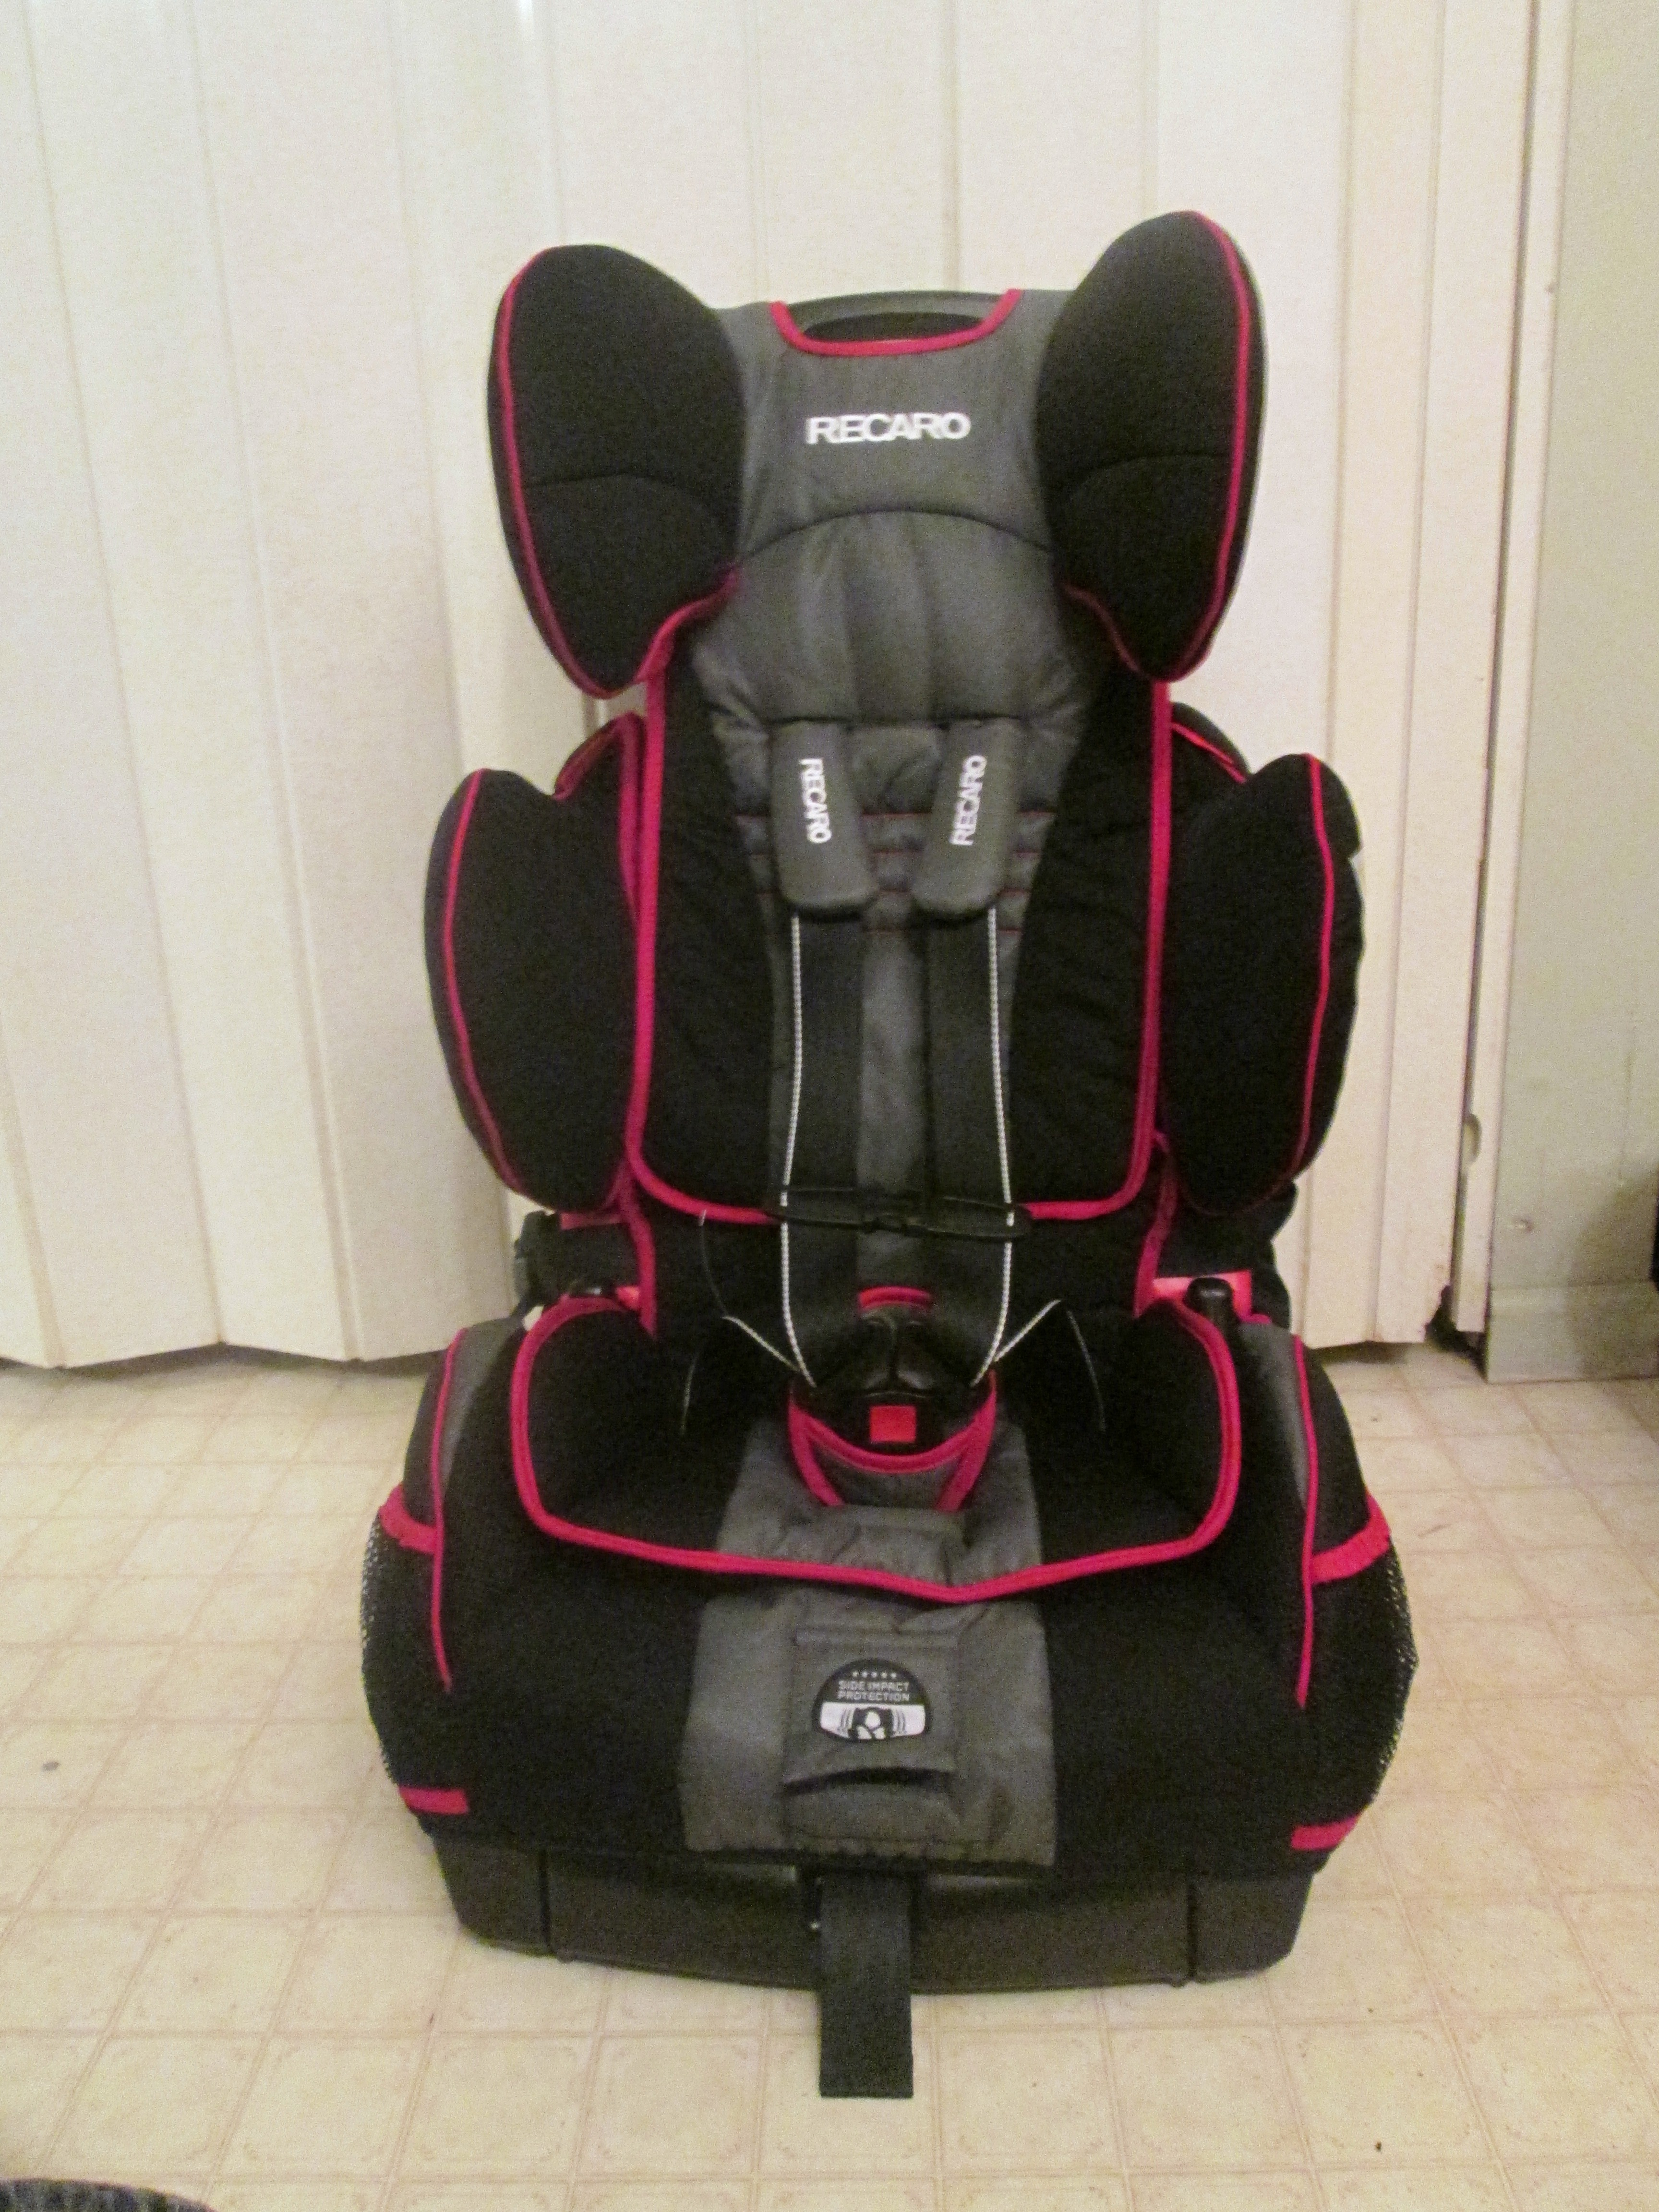 Recaro Performance Sport >> Recaro Performance Sport Baby Seat Harnessed Booster Seats Car